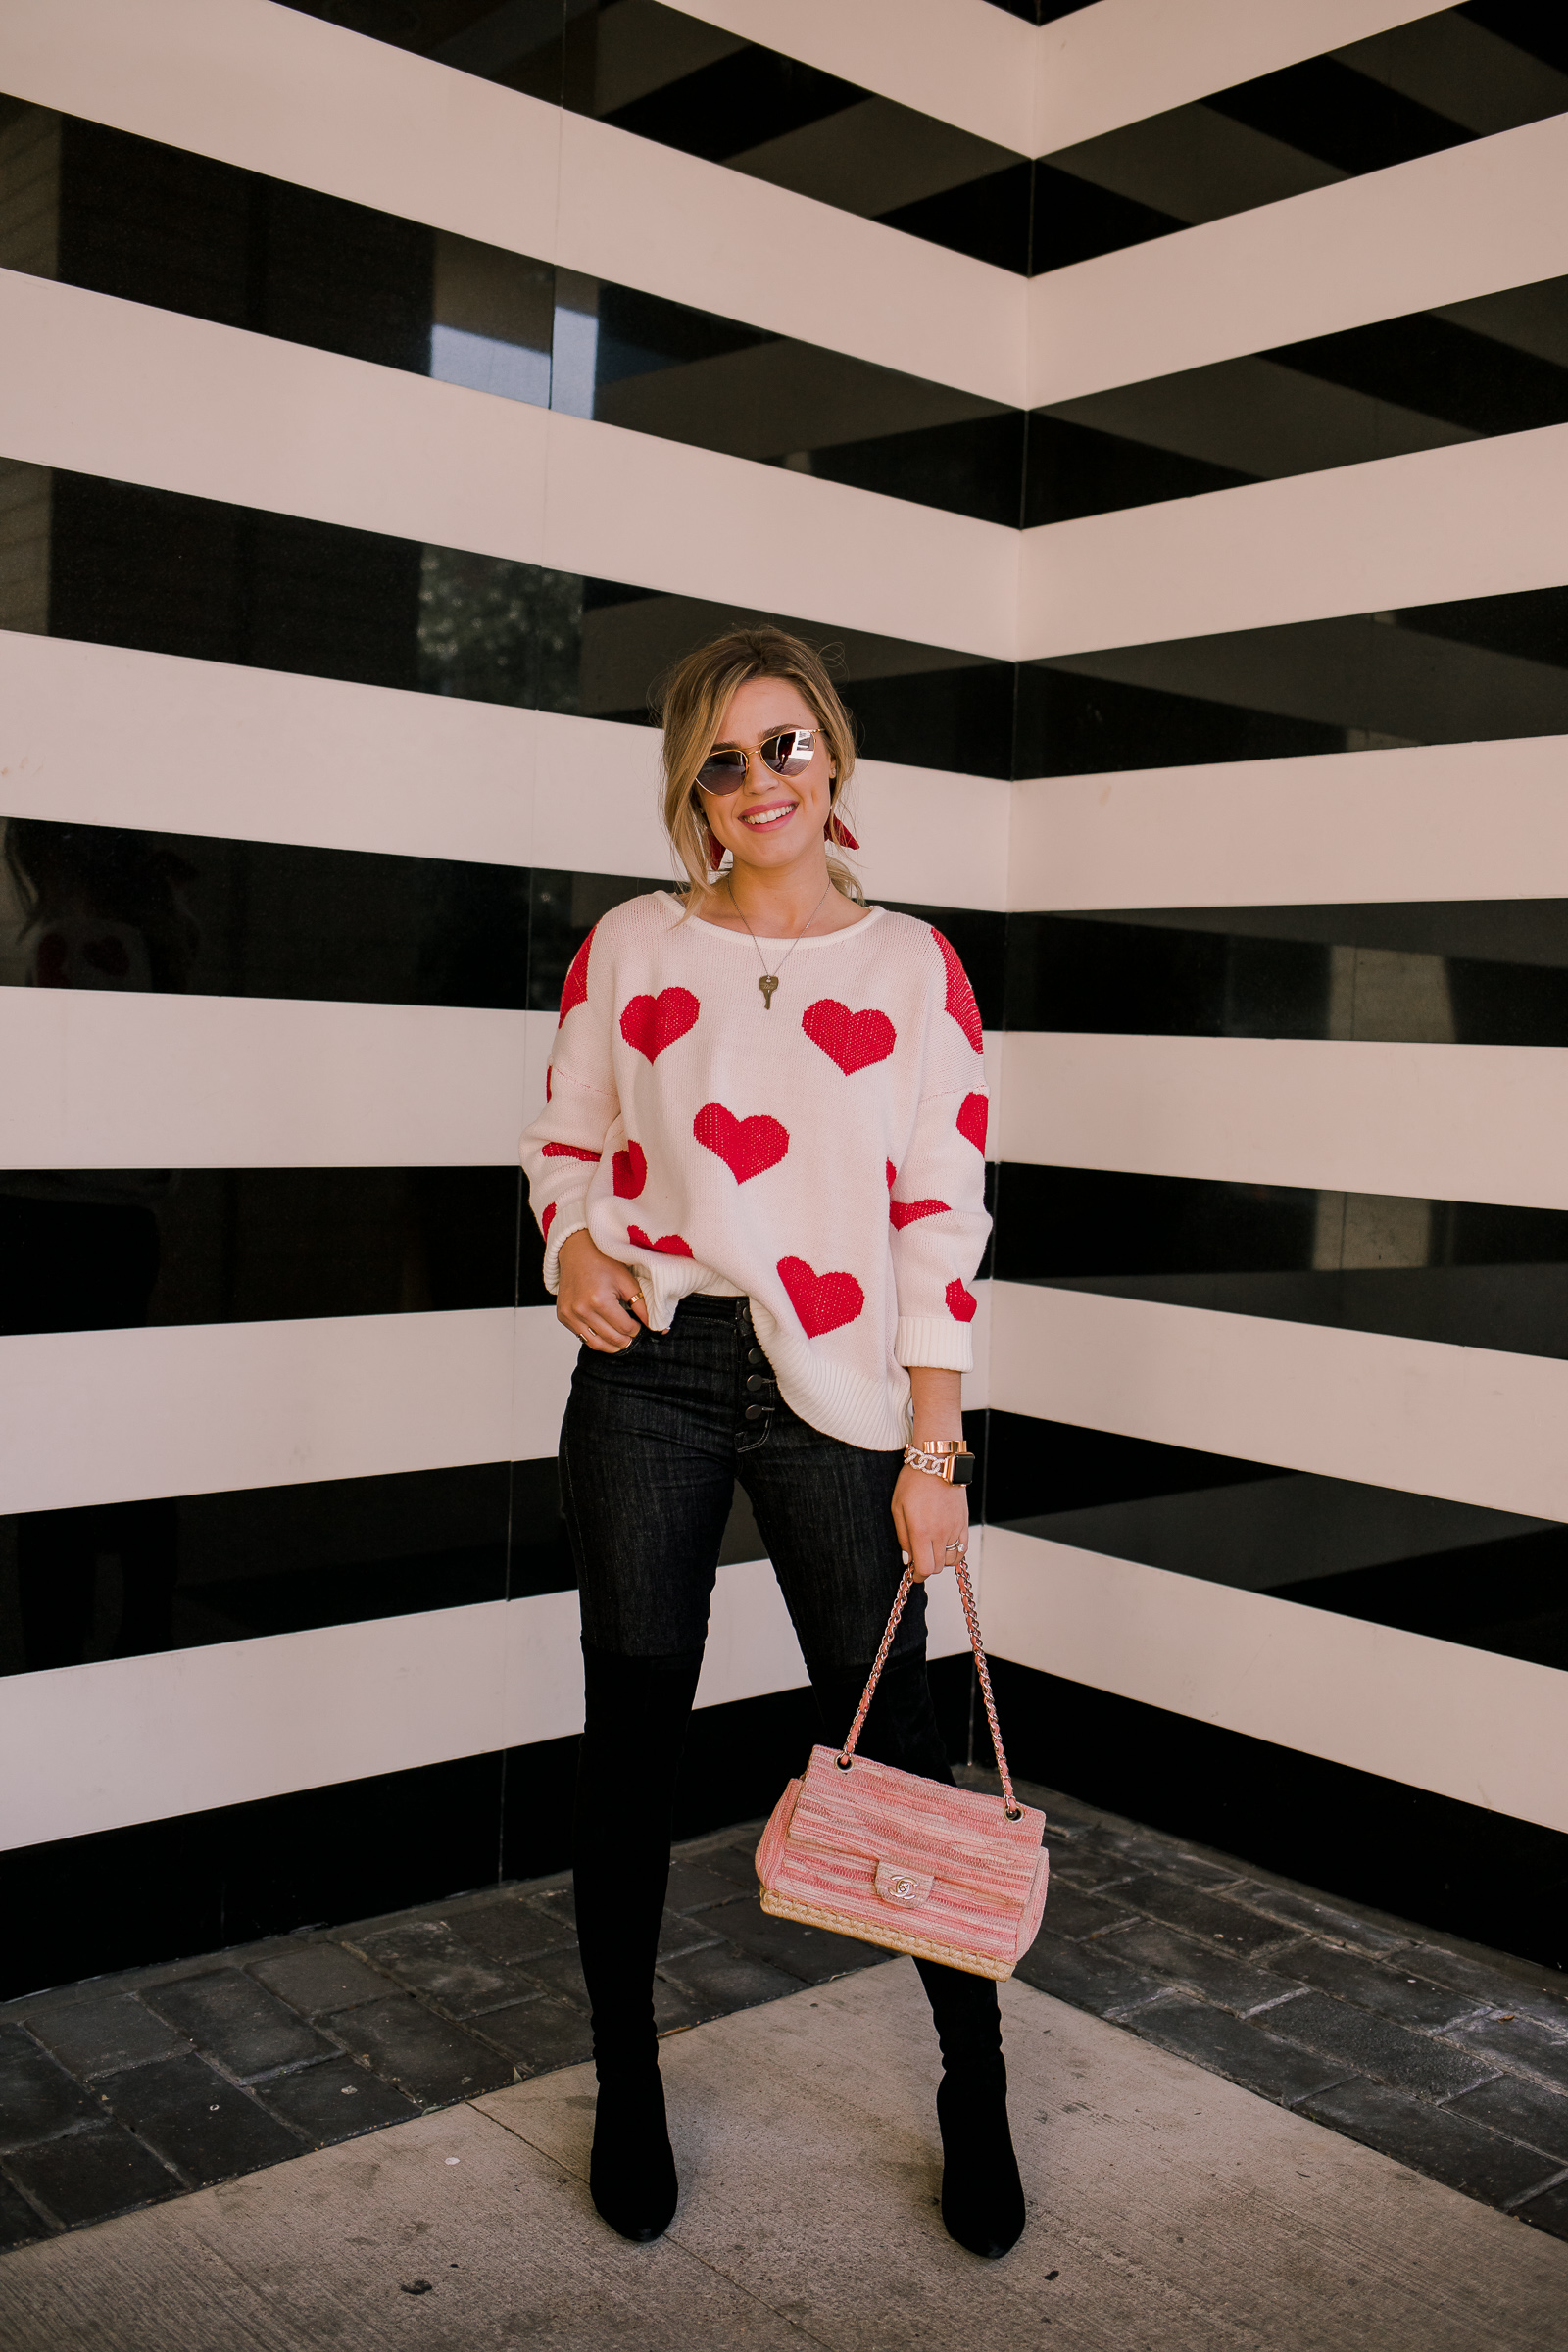 Houston fashion blogger Uptown with Elly Brown wears the perfect heart sweater for Valentine's Day